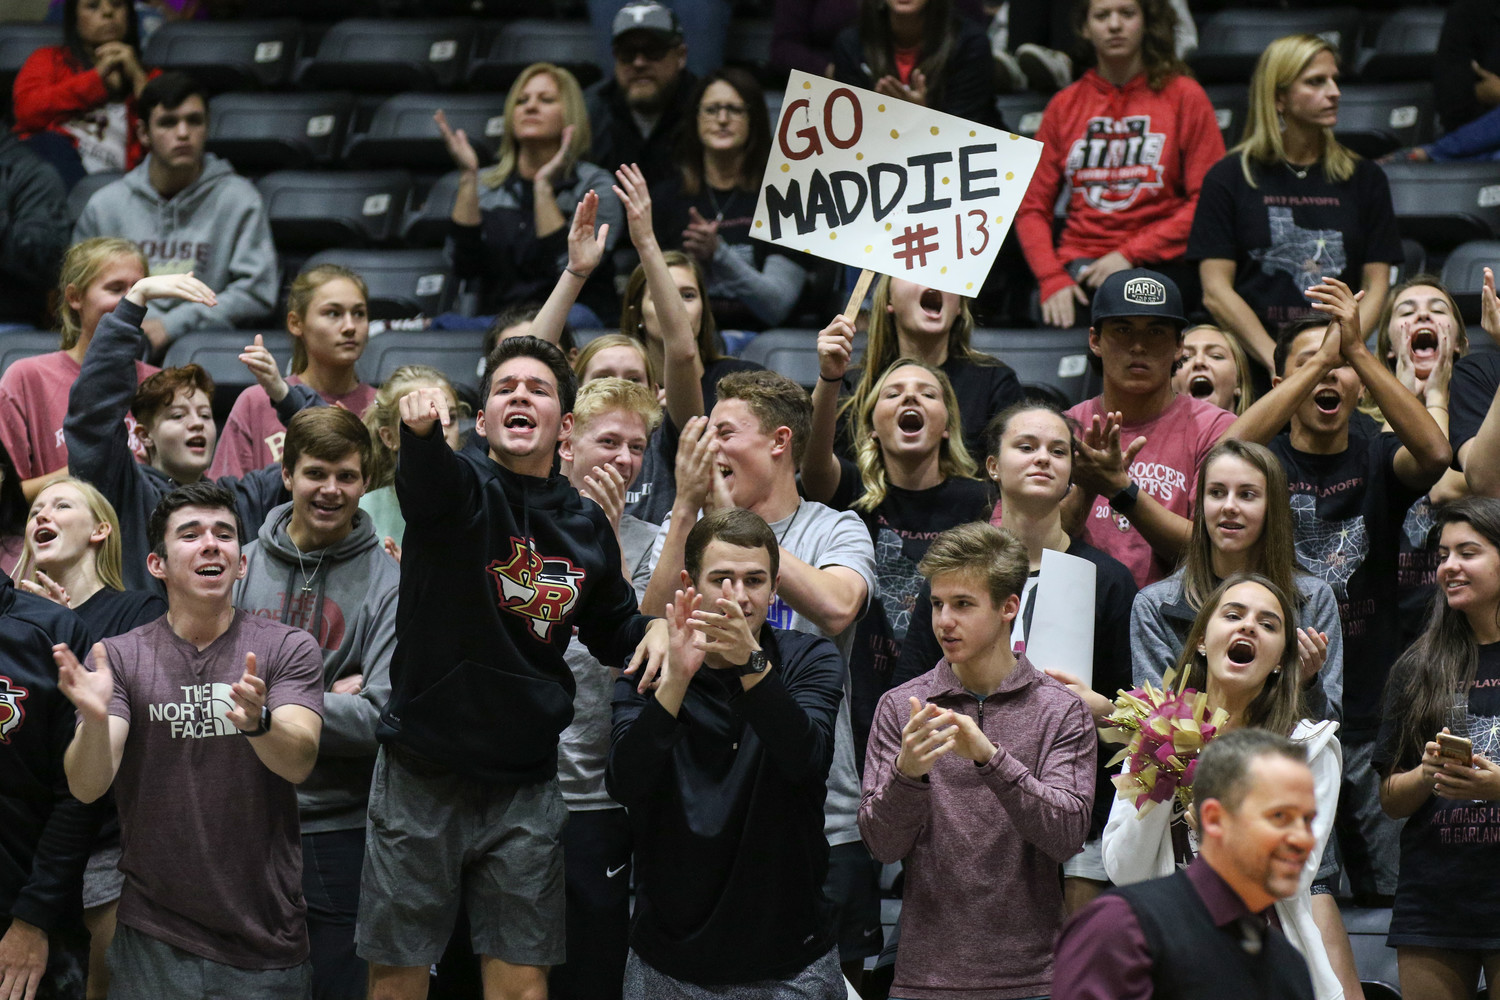 The Rouse crowd cheers during the Class 5A high school volleyball state final between Rouse High School and Prosper High School at Curtis Culwell Center in Garland, Texas, on November 18, 2017. Prosper won the match in five sets, (25-18, 21-25, 18-25, 25, 23, 16-14) to win the 5A state championship.